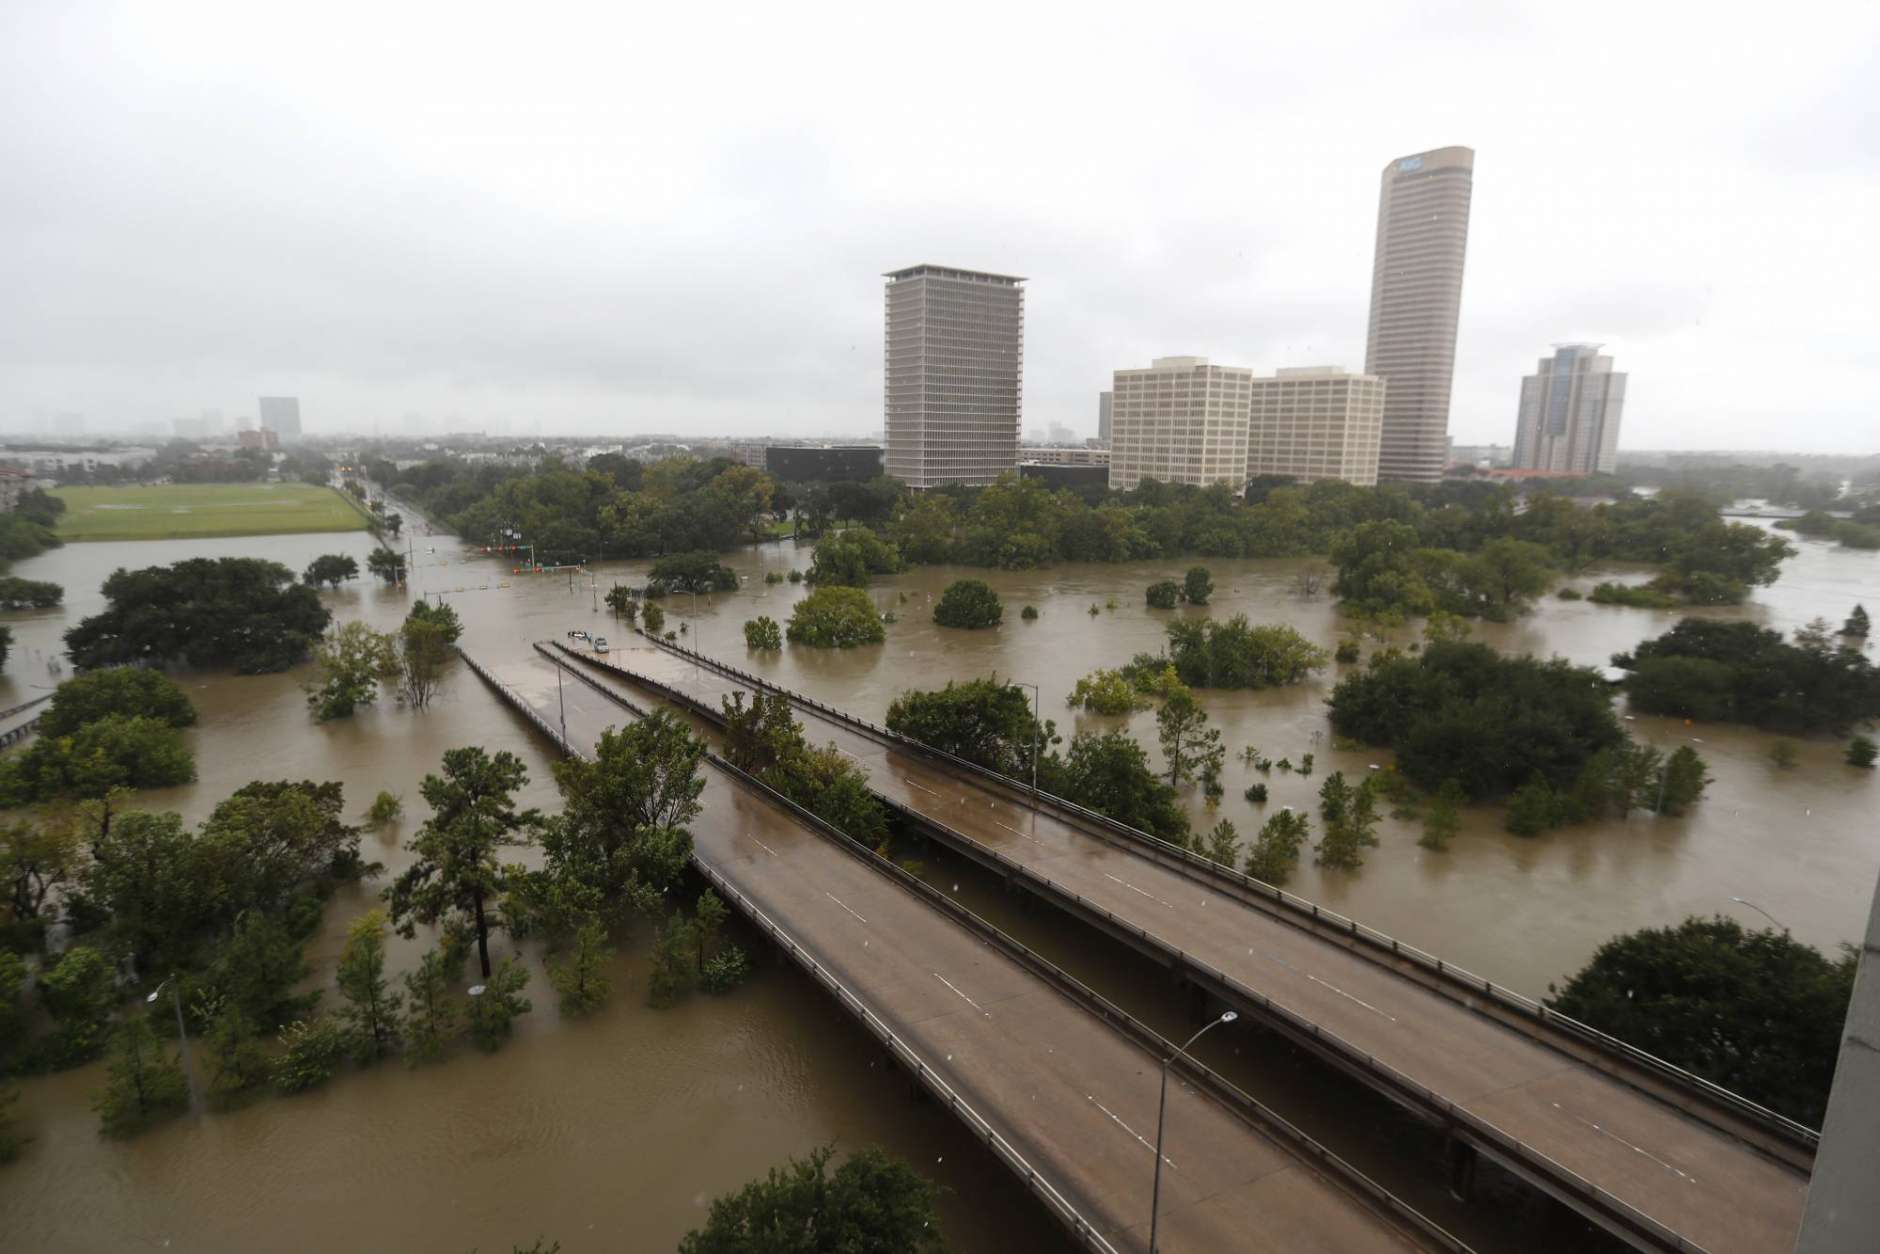 An overhead view of the flooding in Houston, from Buffalo Bayou on Memorial Drive and Allen Parkway, as heavy rains continue falling from Tropical Storm Harvey, Monday, Aug. 28, 2017. ( Karen Warren/Houston Chronicle via AP)